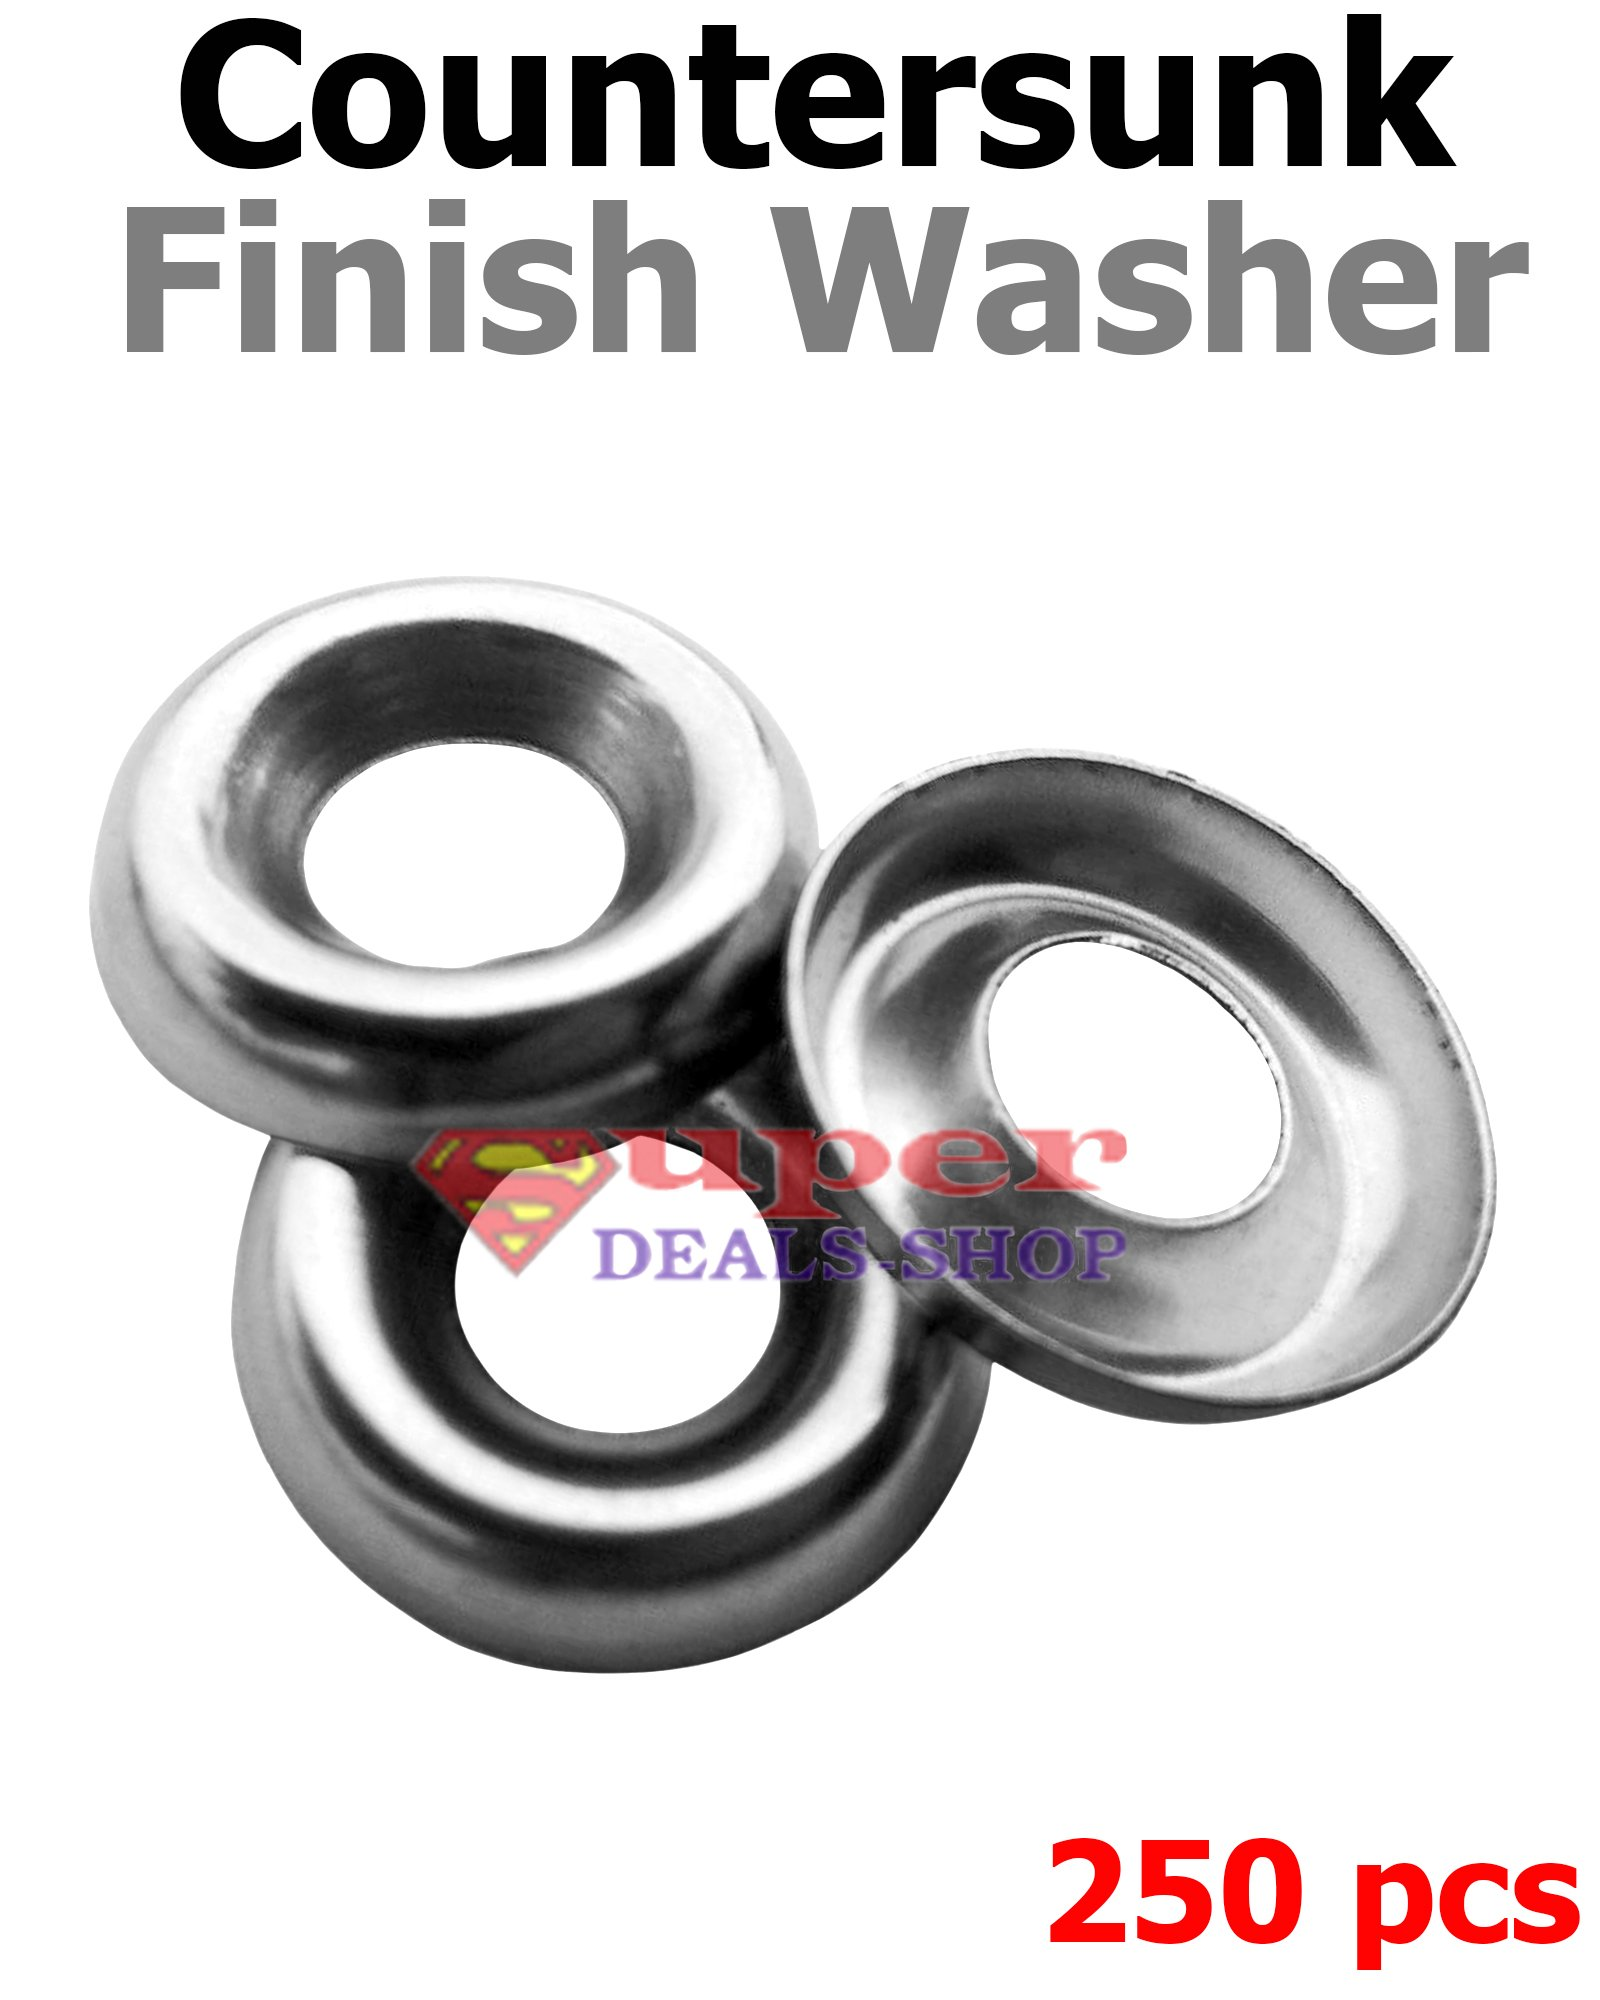 250 pcs Countersunk Finish Washer Stainless Steel Finishing Washers Finishing Cup Washers #8 Super-Deals-Shop